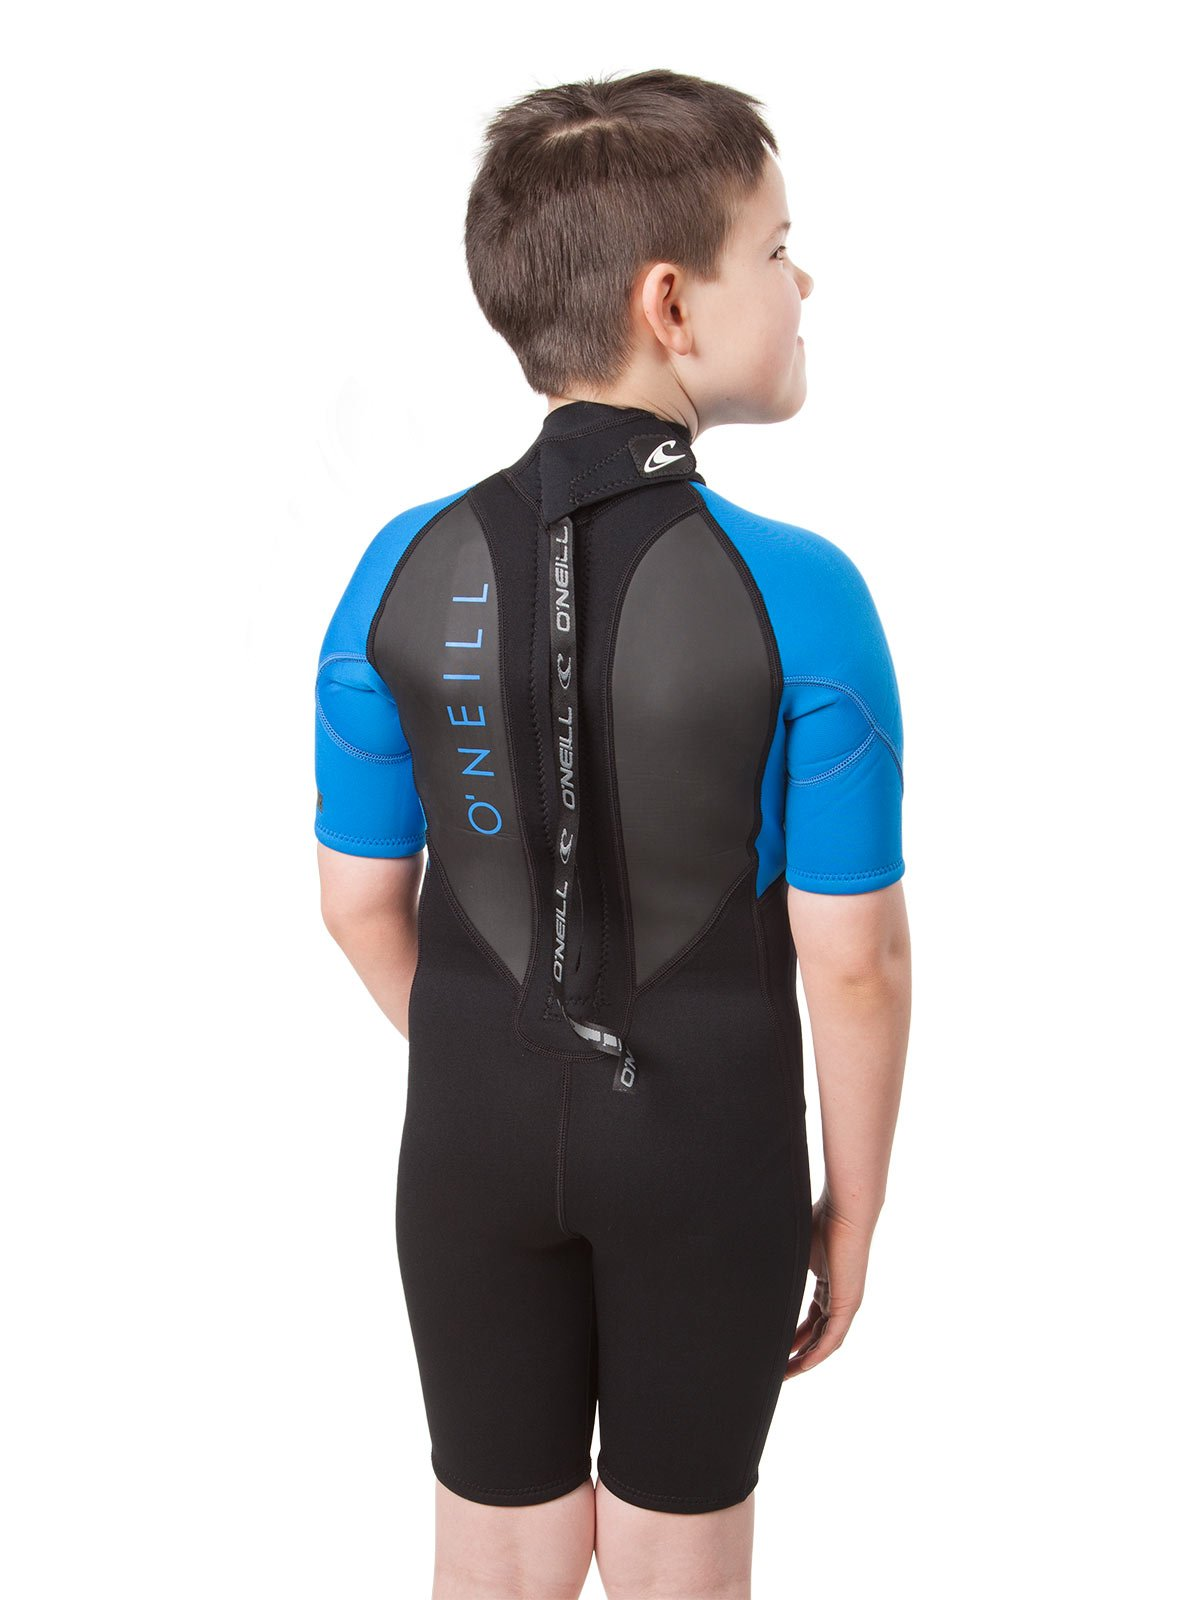 O'Neill Youth Reactor-2 2mm Back Zip Short Sleeve Spring Wetsuit, Black/Ocean, 4 by O'Neill Wetsuits (Image #5)